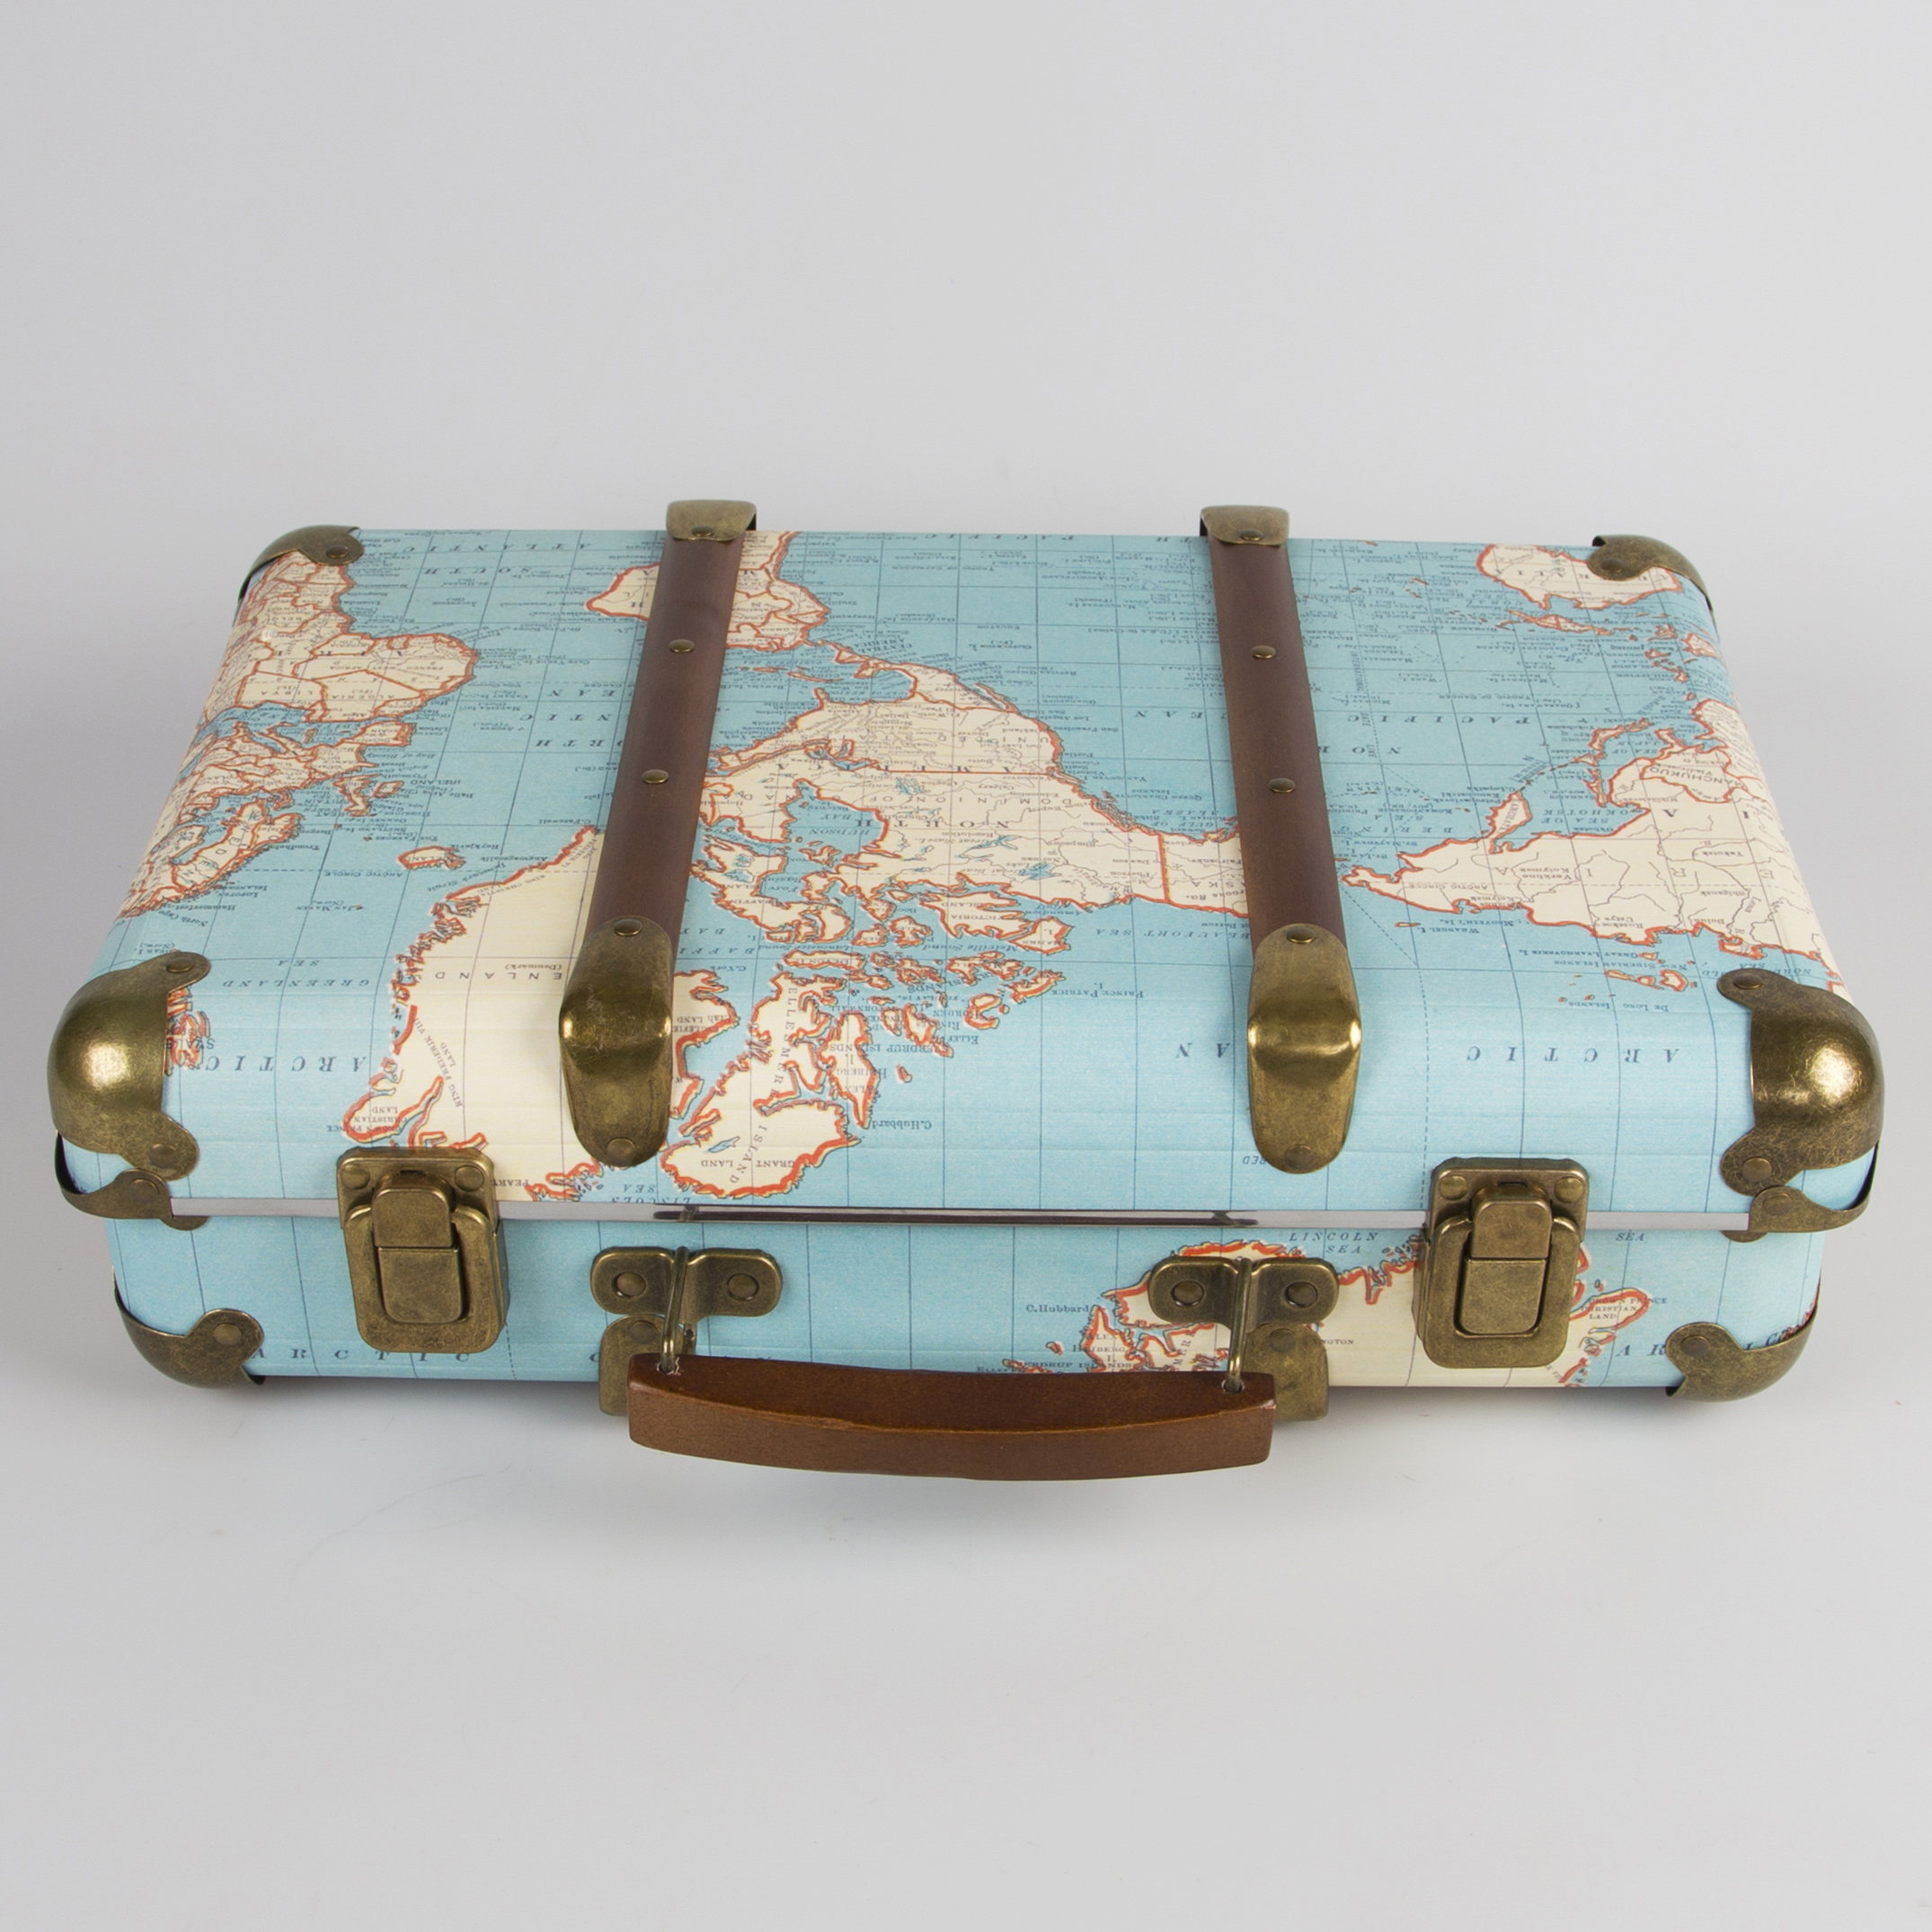 Around the World Suitcase